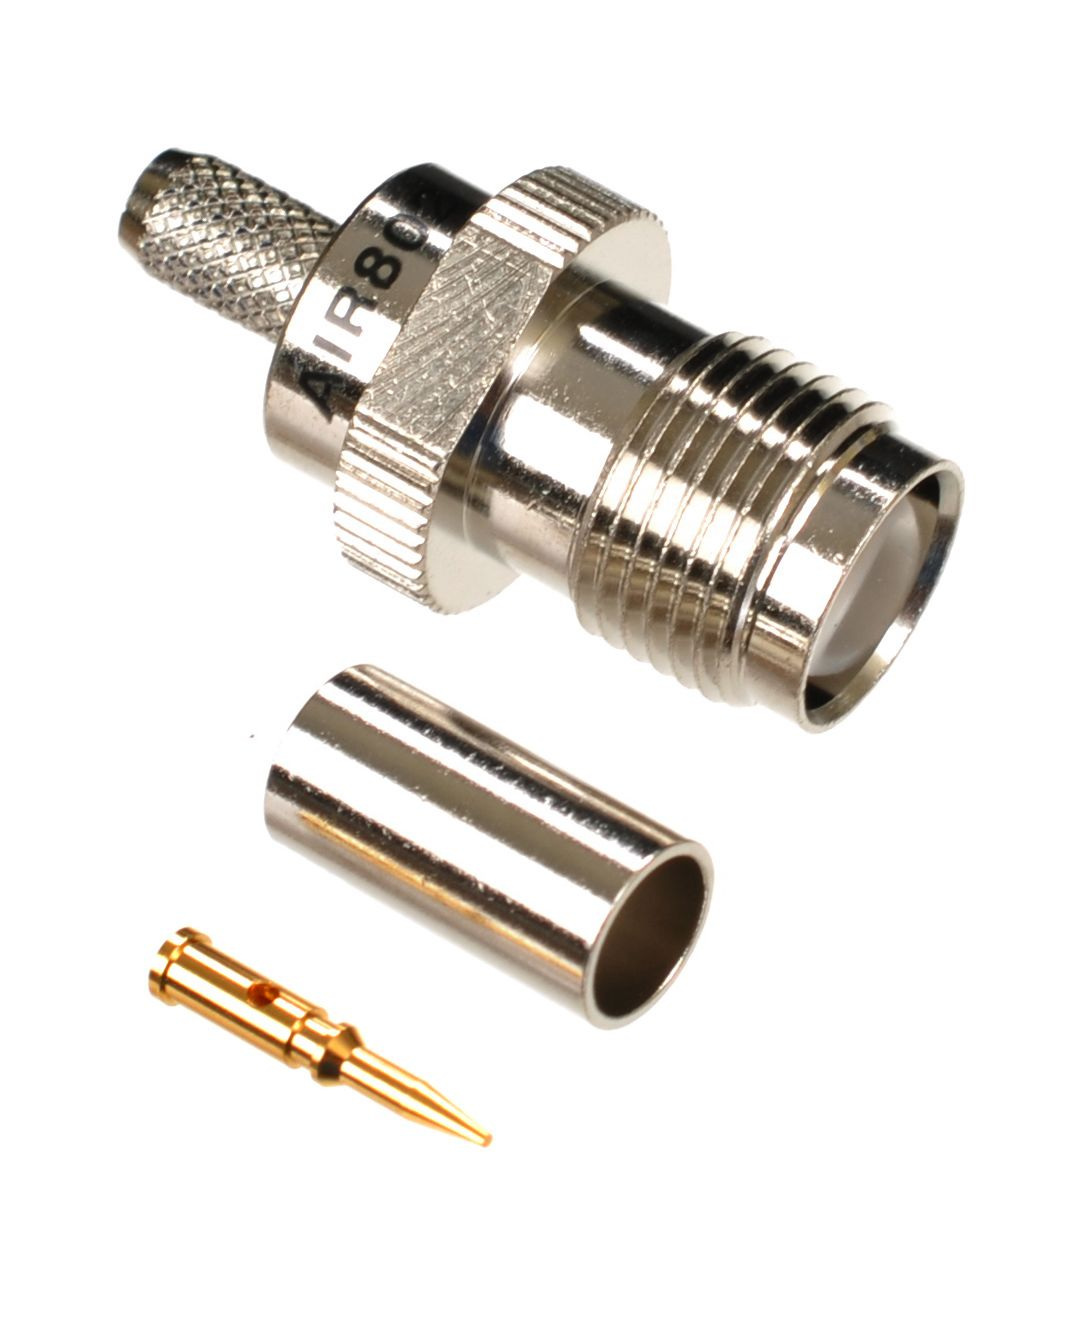 RP-TNC jack-female crimp connector for AIR802 CA195, Times Microwave LMR195, RG58 and similar sized coaxial cables.